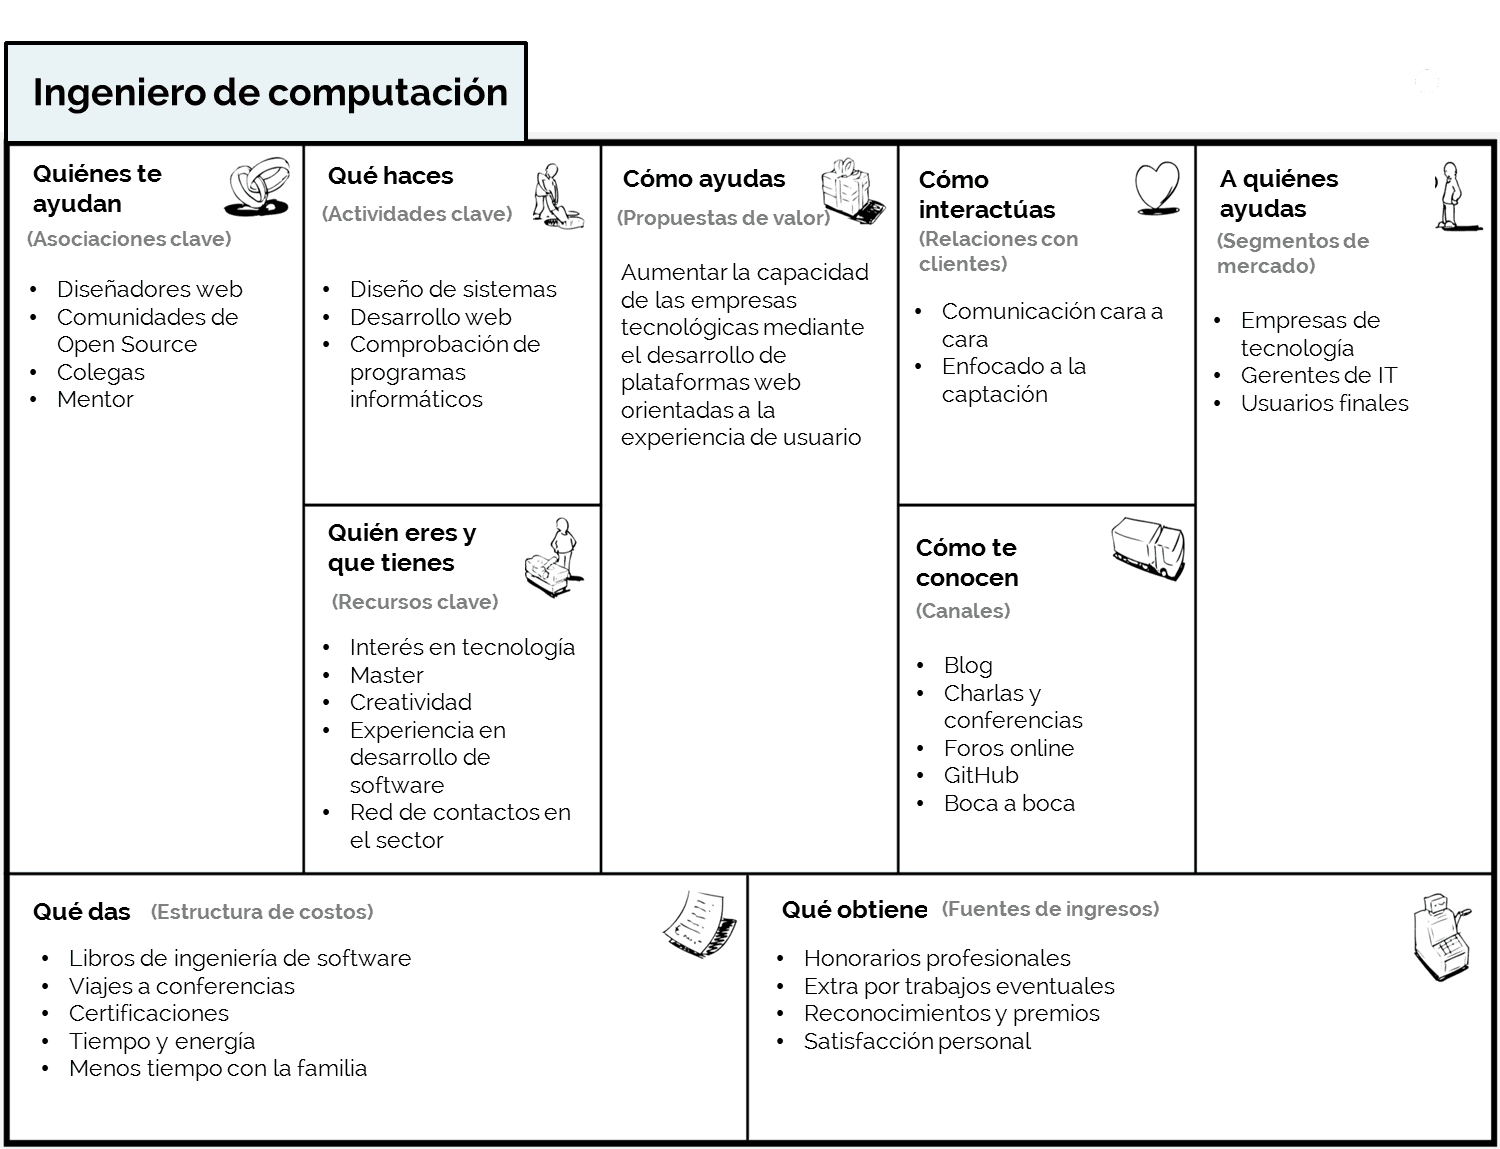 ejemplo business model canvas personal ingeniero de computación